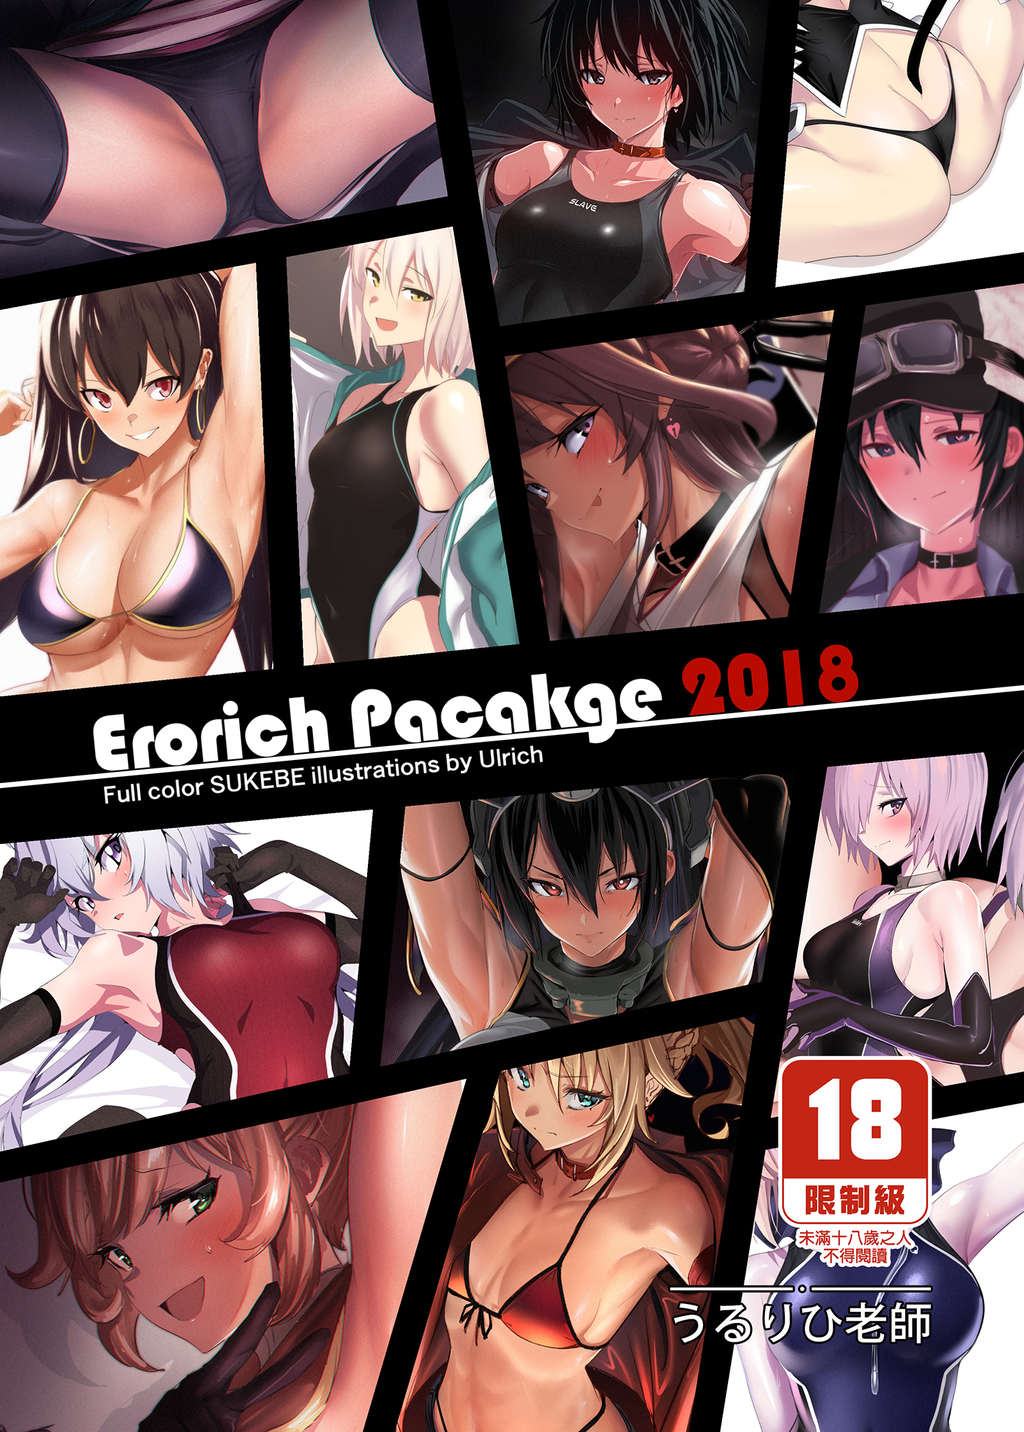 Erorich Package 2018